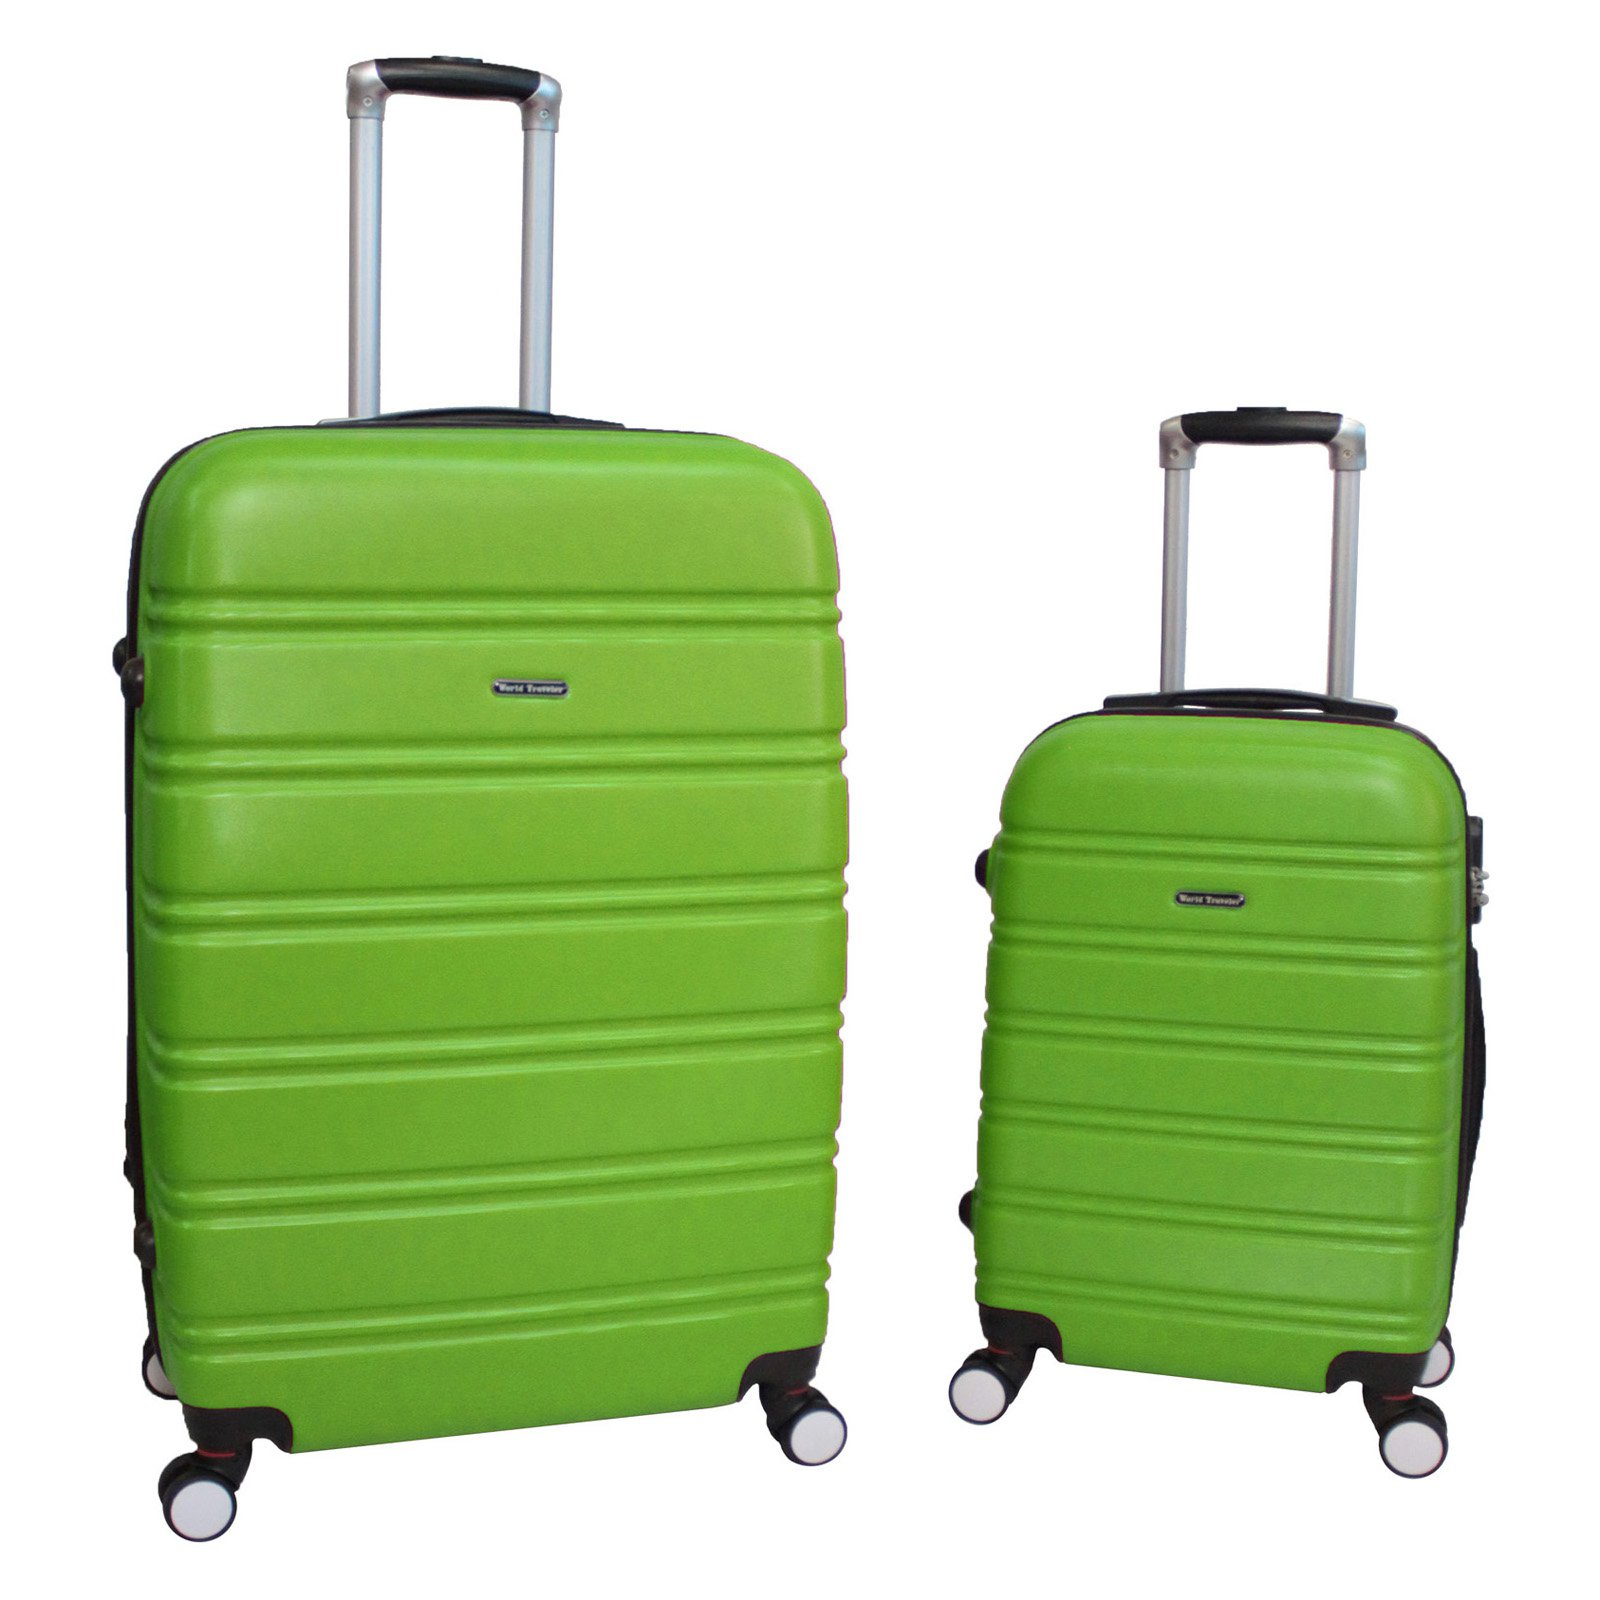 World Traveler Bristol 2 Piece Hardside Expandable Spinner Luggage Set